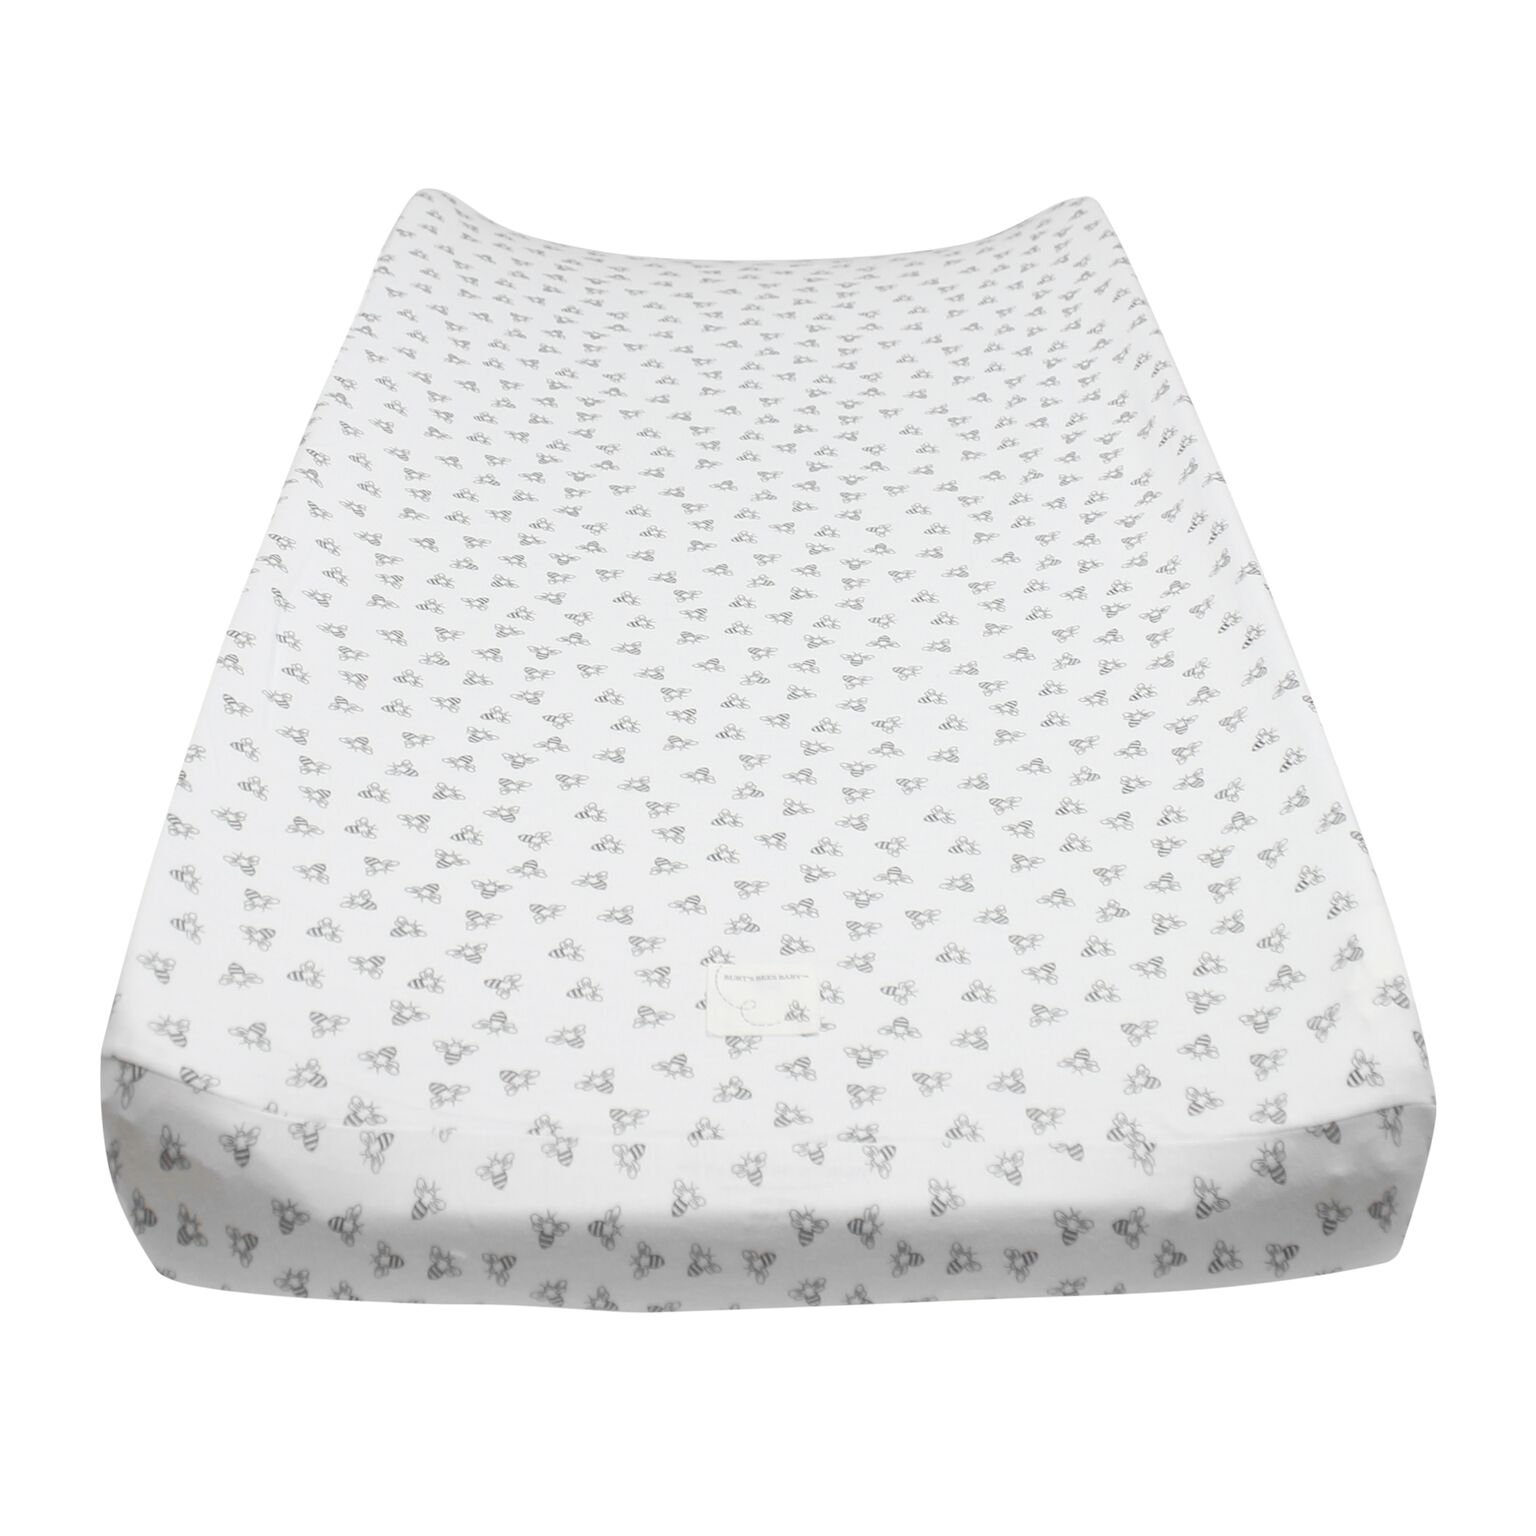 """Burt's Bees Baby - Honeybee Print Changing Pad Cover, 100% Organic Changing Pad for Standard 16"""" x 32"""" Changing Pad (Heather Grey)"""